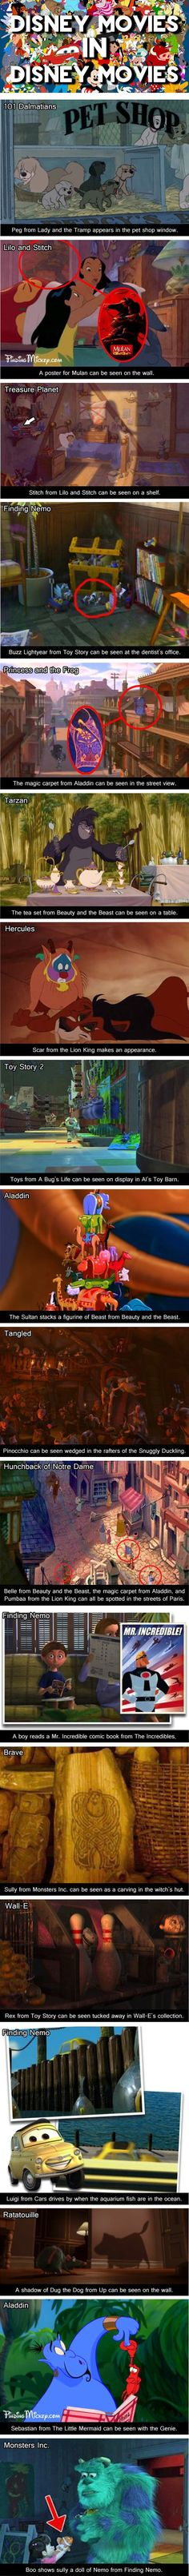 Disney movies within movies - very cool!